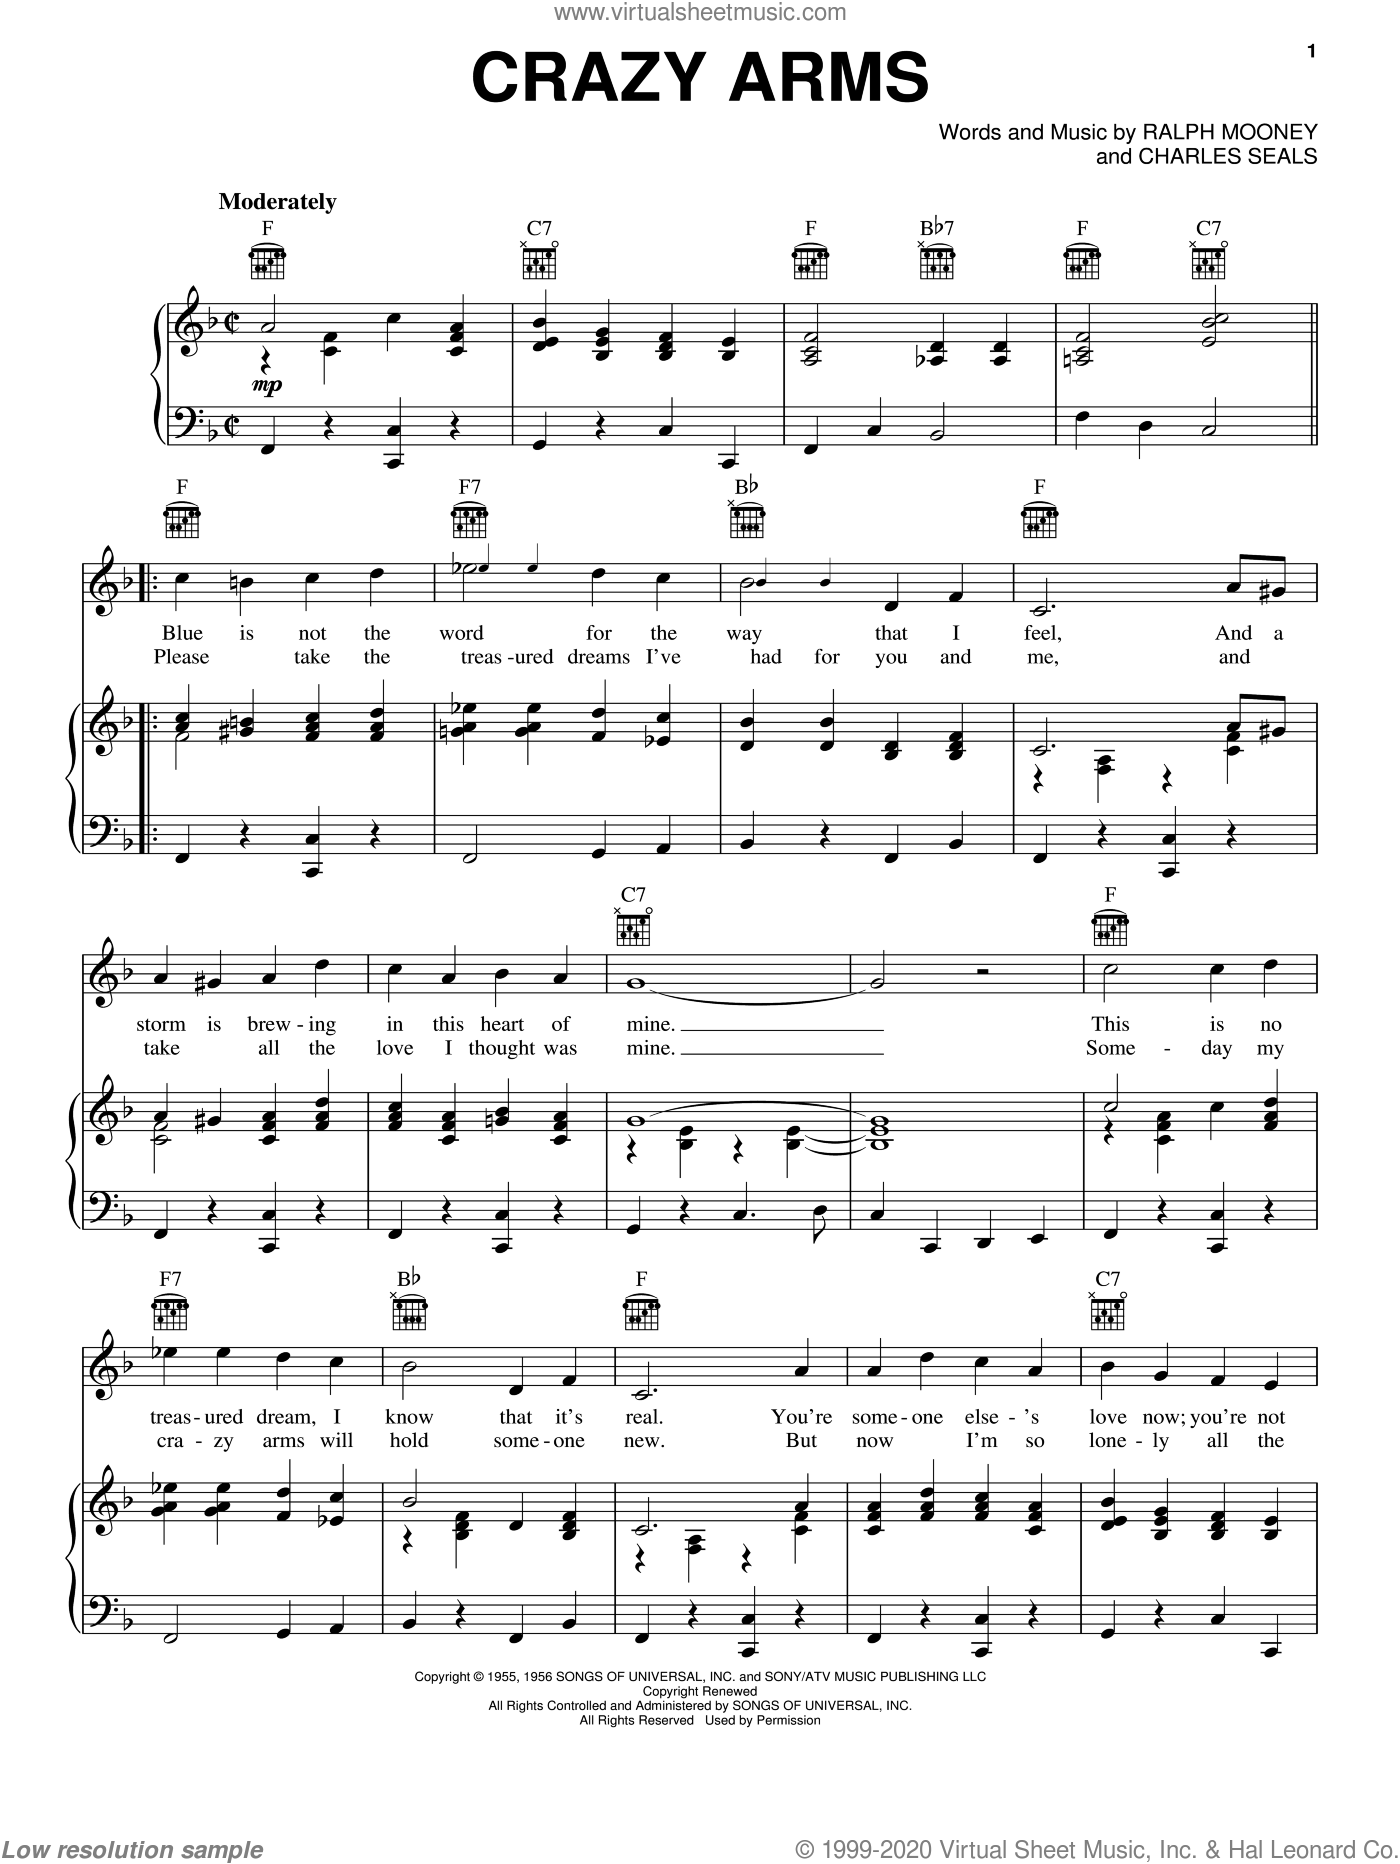 Crazy Arms sheet music for voice, piano or guitar by Ralph Mooney